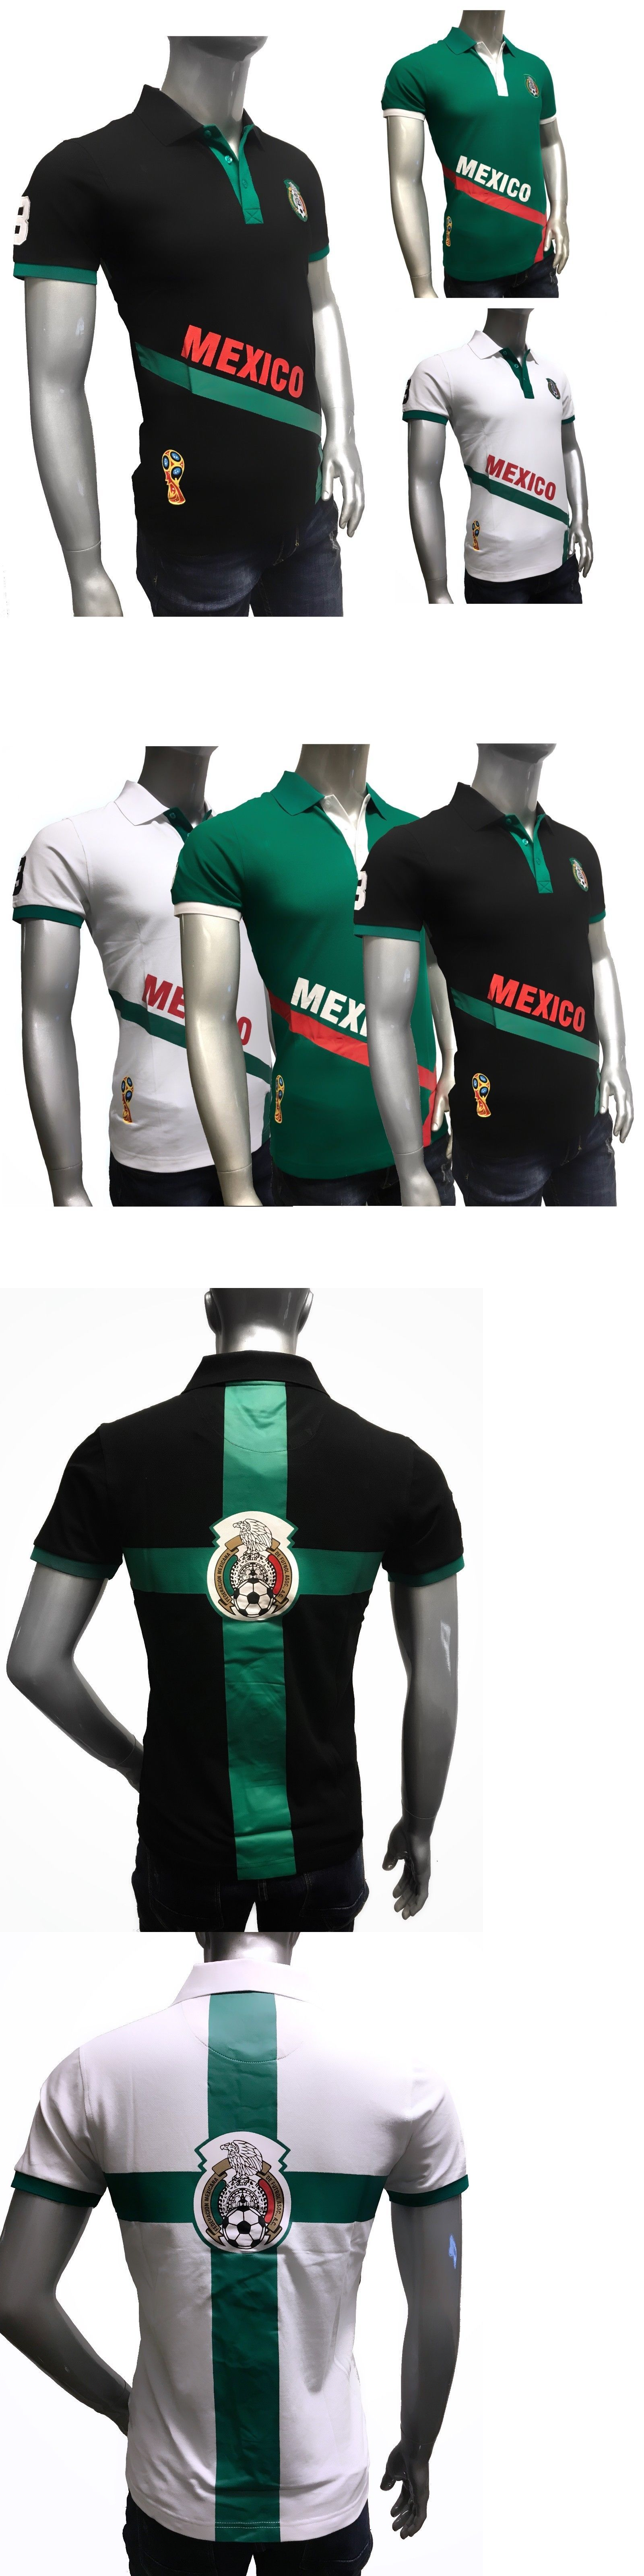 4144990d7 Mexico Soccer Jersey 2018 For Sale - Joe Maloy